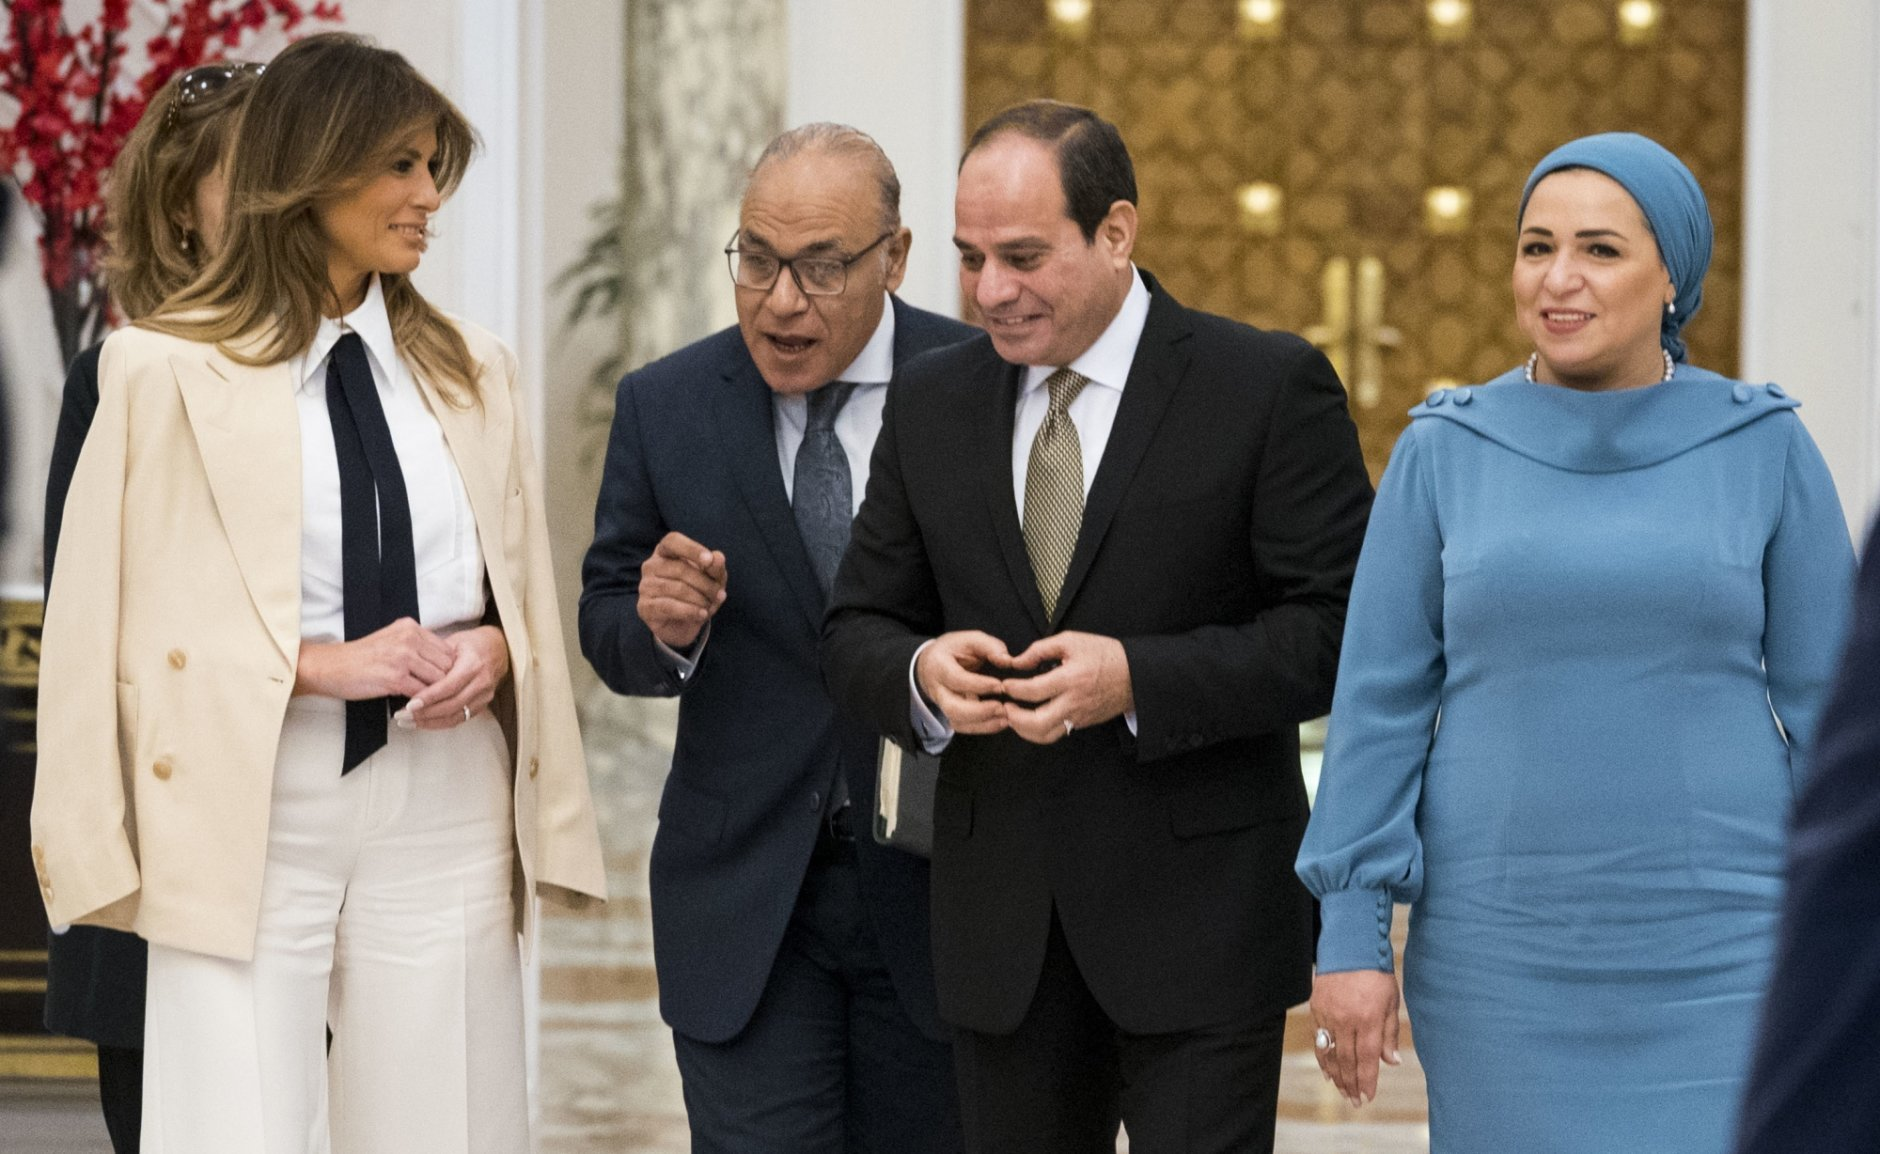 First Lady Melania Trump meets with Egyptian President Abdel Fattah al-SisiAbdel and Egyptian First Lady Entissar Mohameed Amer at the Presidential Palace in Cairo, Egypt, Saturday Oct 6, 2018. The First Lady wraps up her 7 day trip to Africa and returns to Washington tomorrow.   (Doug Mills/The New York Times via AP, Pool)